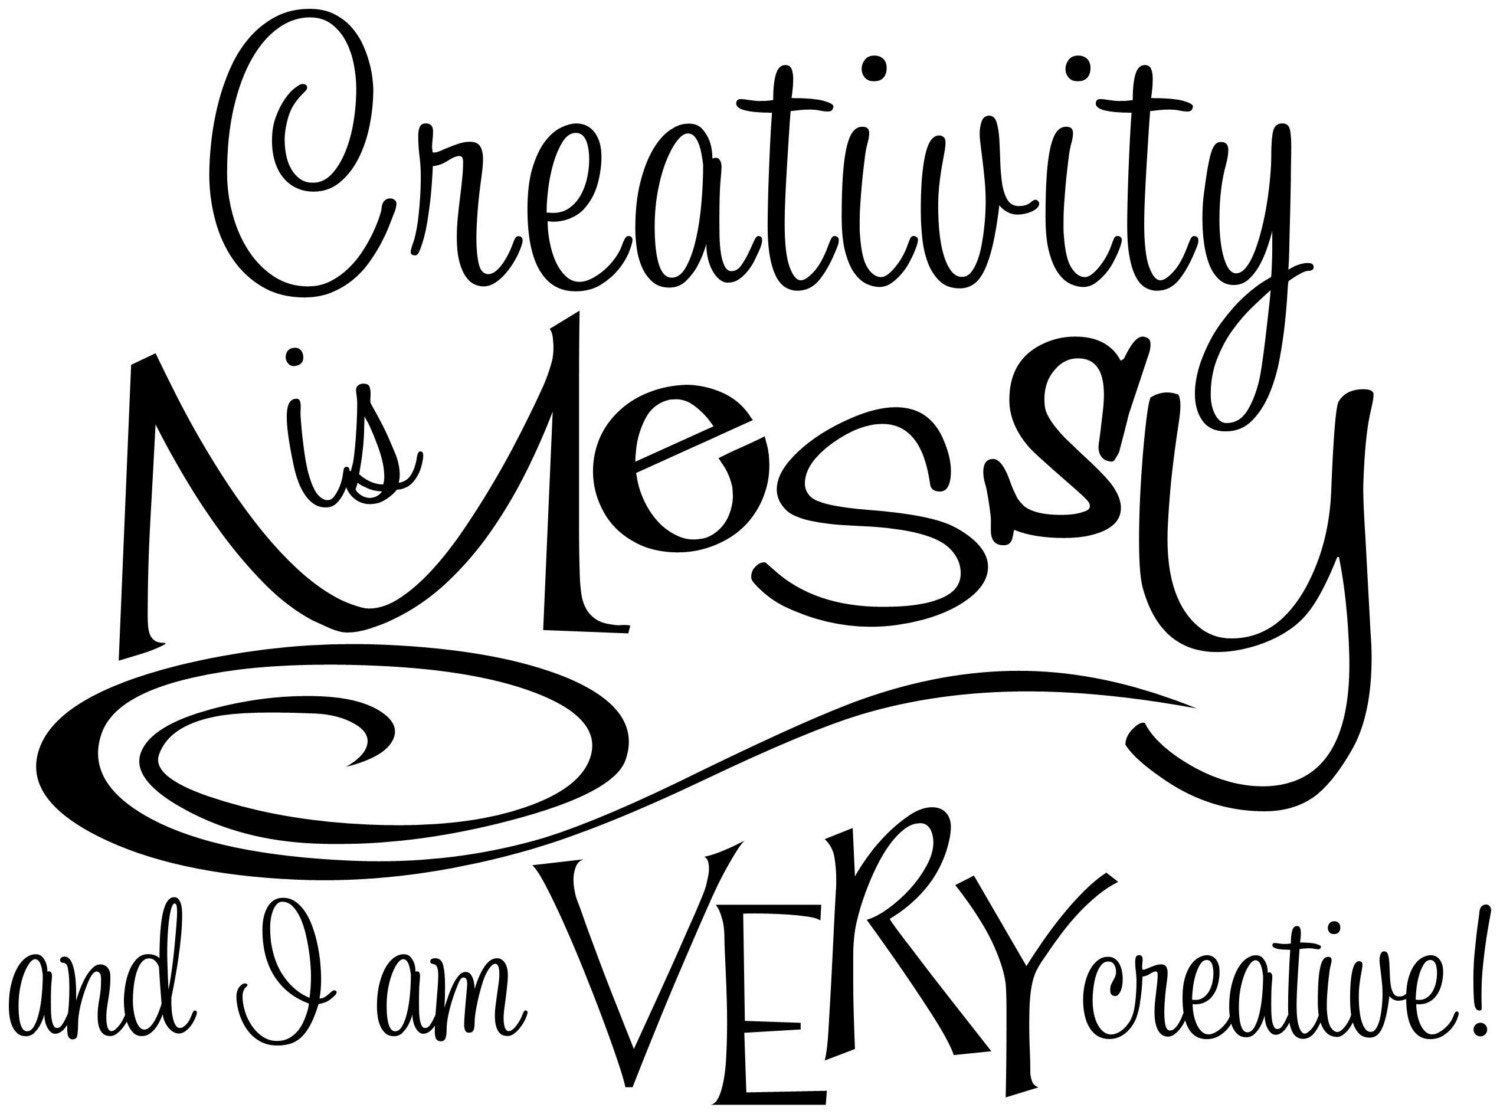 Creativity Is Messy Humorous Vinyl Wall Decal for Art, Scrapbooking, Cardmaking, Sewing, and Craft Rooms